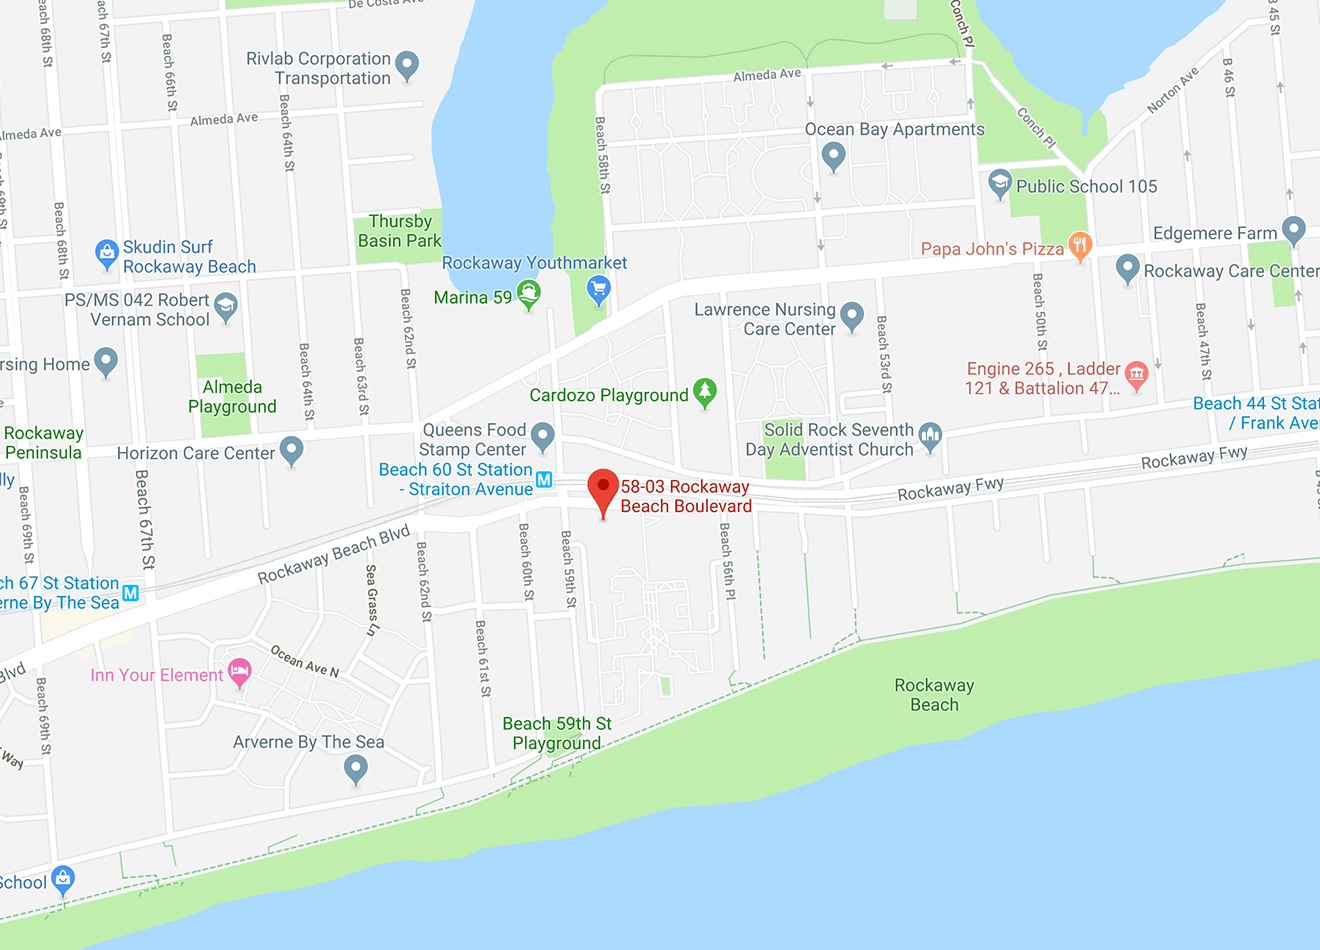 Neighborhood map showing location of 58-03 Rockaway Beach Blvd, across from Beach 60 Street elevated train station